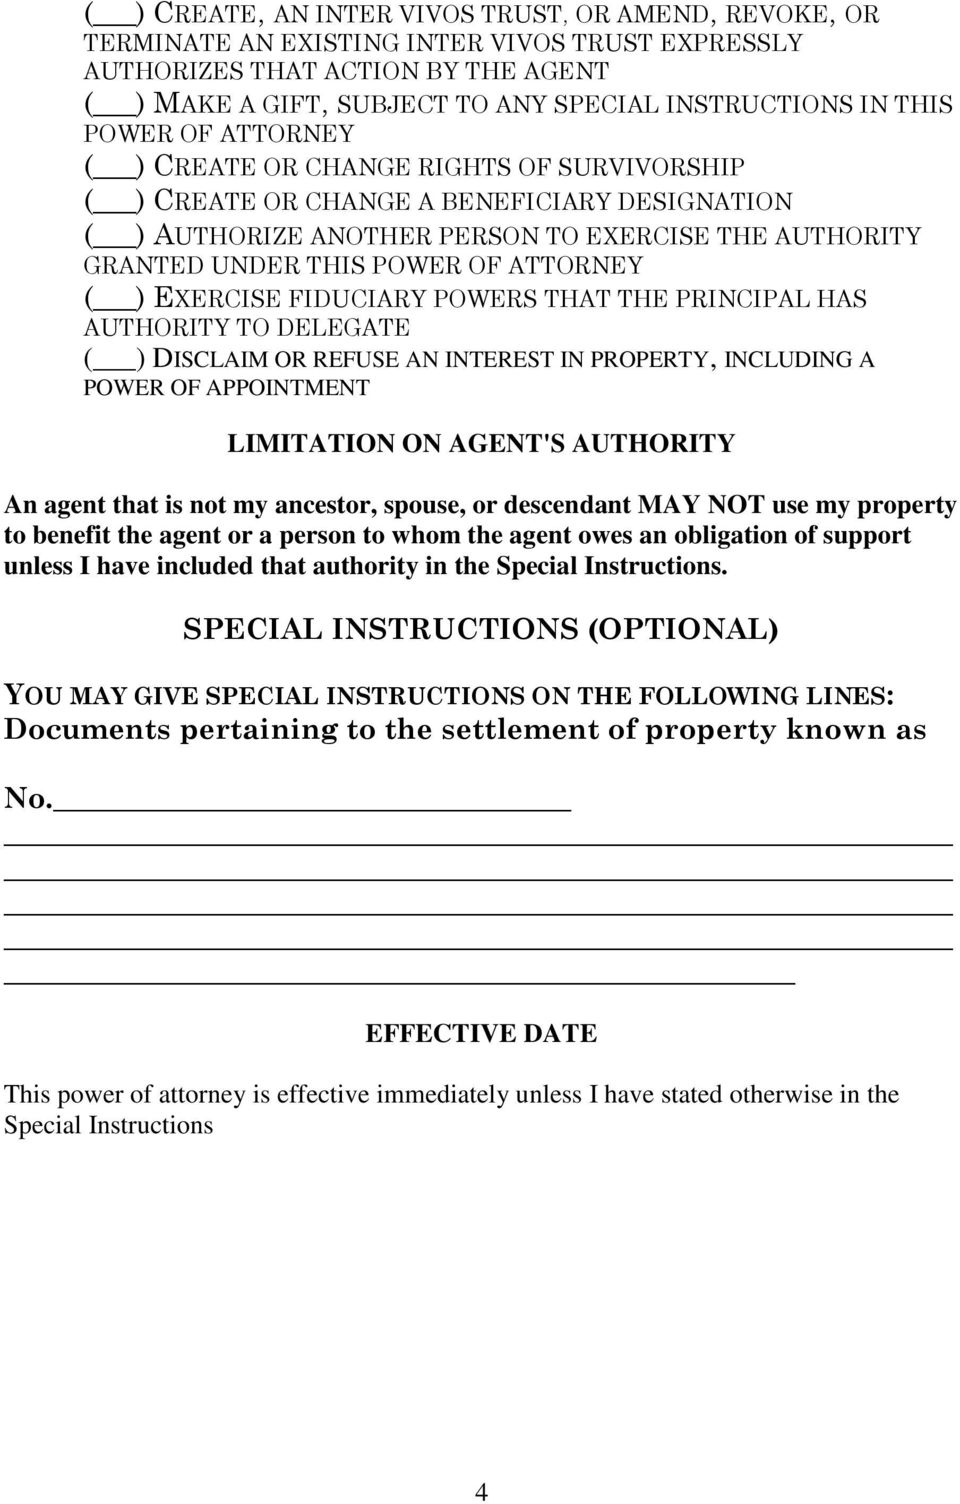 ATTORNEY ( ) EXERCISE FIDUCIARY POWERS THAT THE PRINCIPAL HAS AUTHORITY TO DELEGATE ( ) DISCLAIM OR REFUSE AN INTEREST IN PROPERTY, INCLUDING A POWER OF APPOINTMENT LIMITATION ON AGENT'S AUTHORITY An